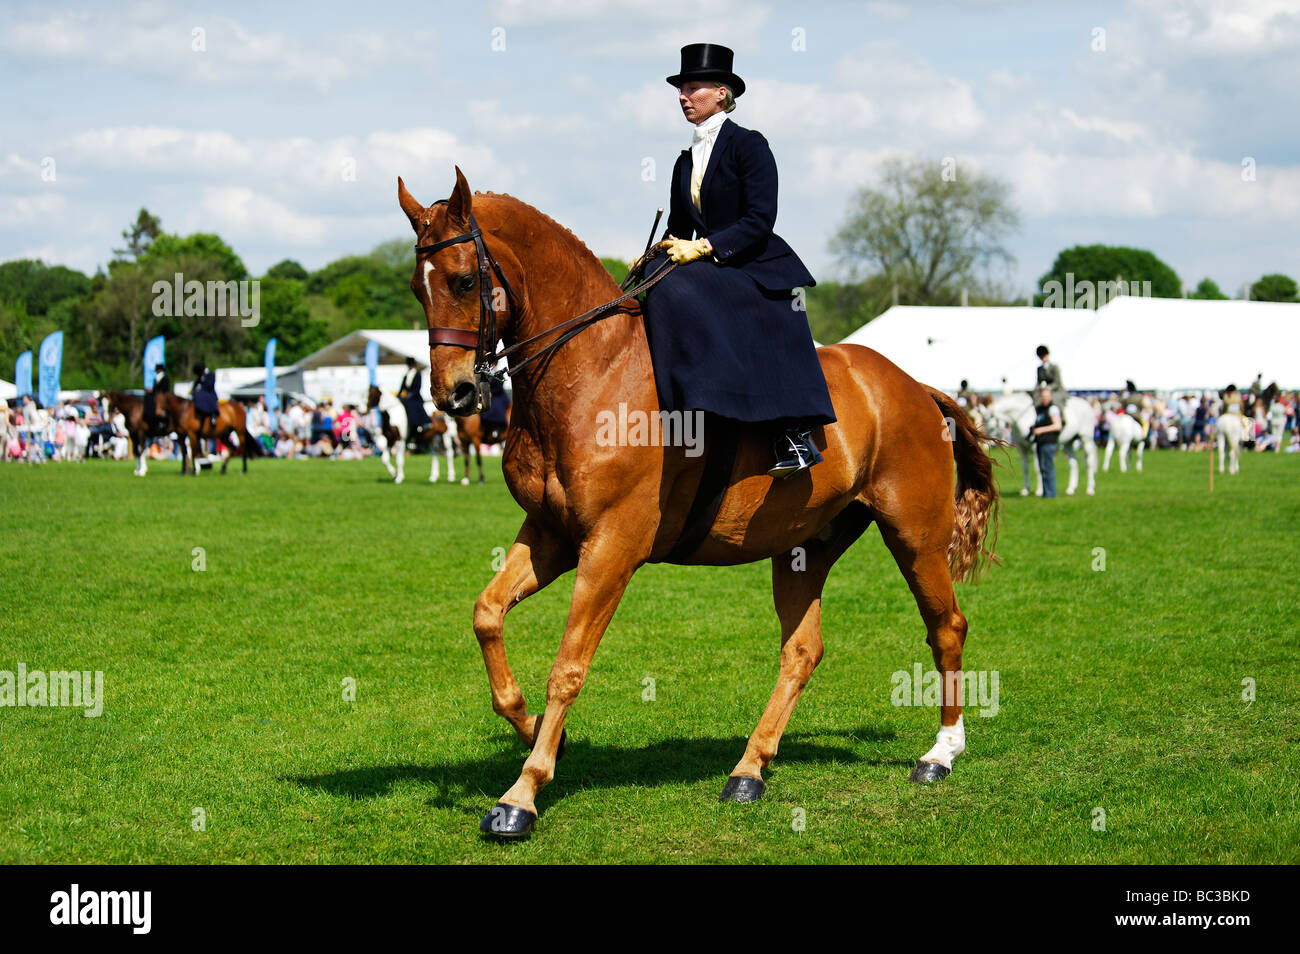 Elegant side saddle rider at an equestrian event during the Northumberland County Show at Corbridge  25 May 2009 - Stock Image